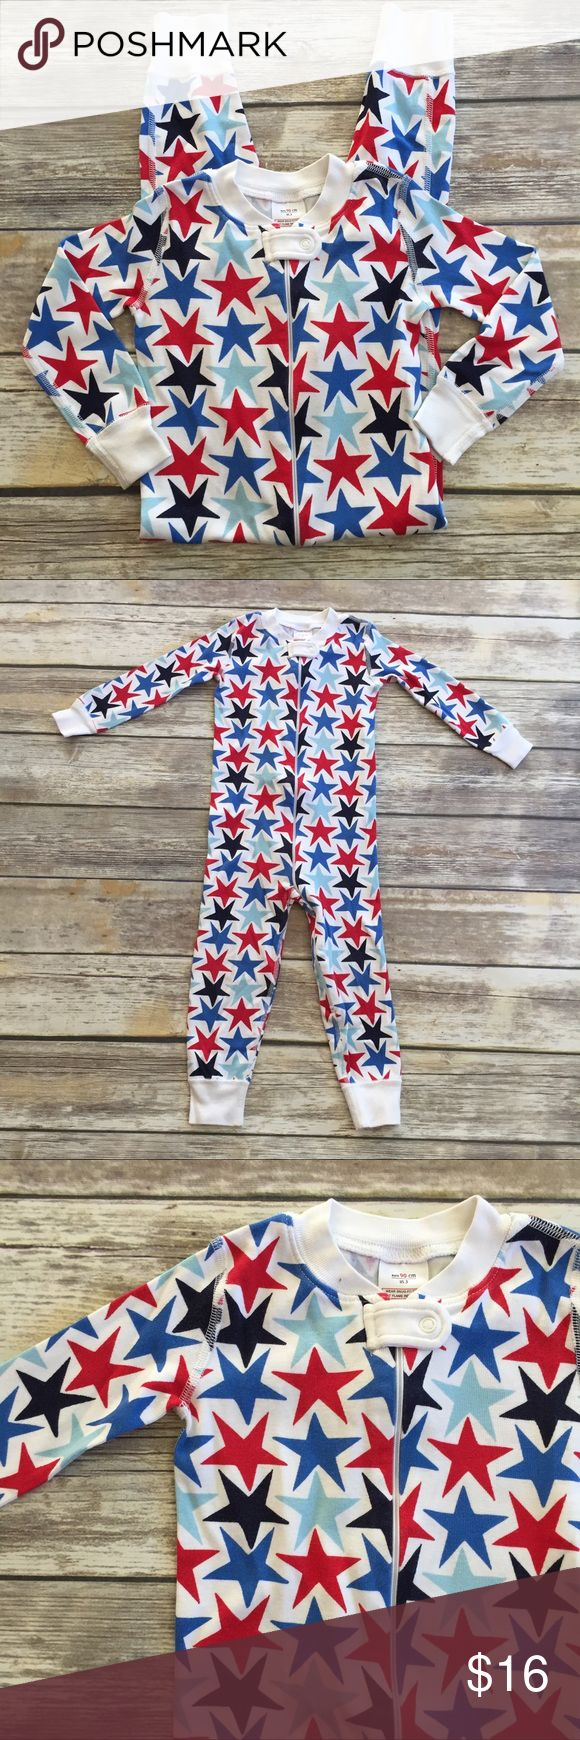 Hanna Andersson Zip Up Sleeper White zip up pjs with red and blue star print. VGUC save for one or two pin sized spots, see photos. Size 90 Hanna Andersson Pajamas